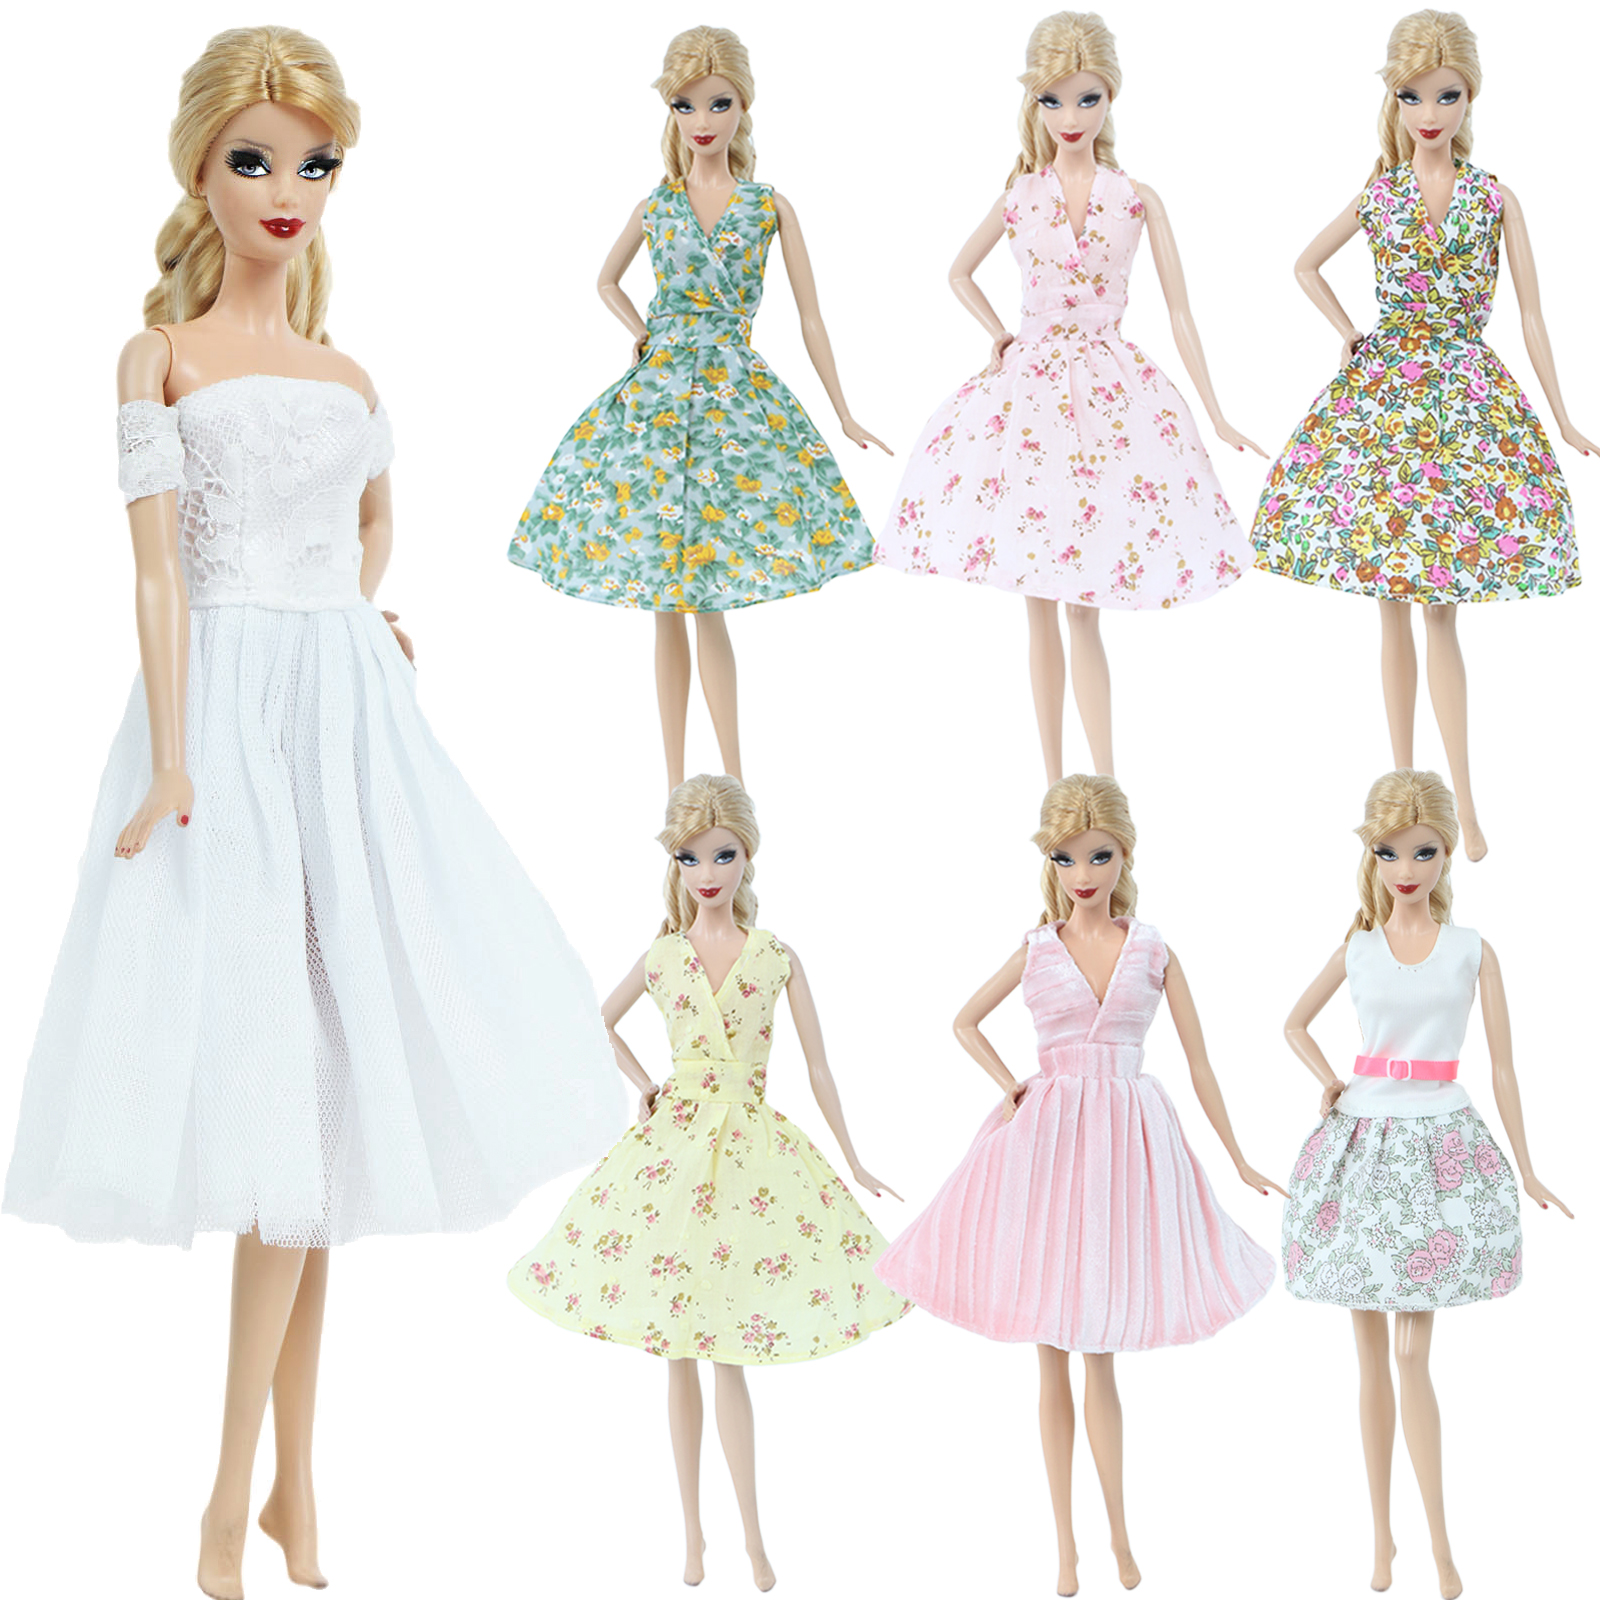 Lot Fashion Pastoral Styles V-neck Mini Dresses Floral Gown Daily Lovely Summer Cool Clothes For Barbie Doll Accessories Toy